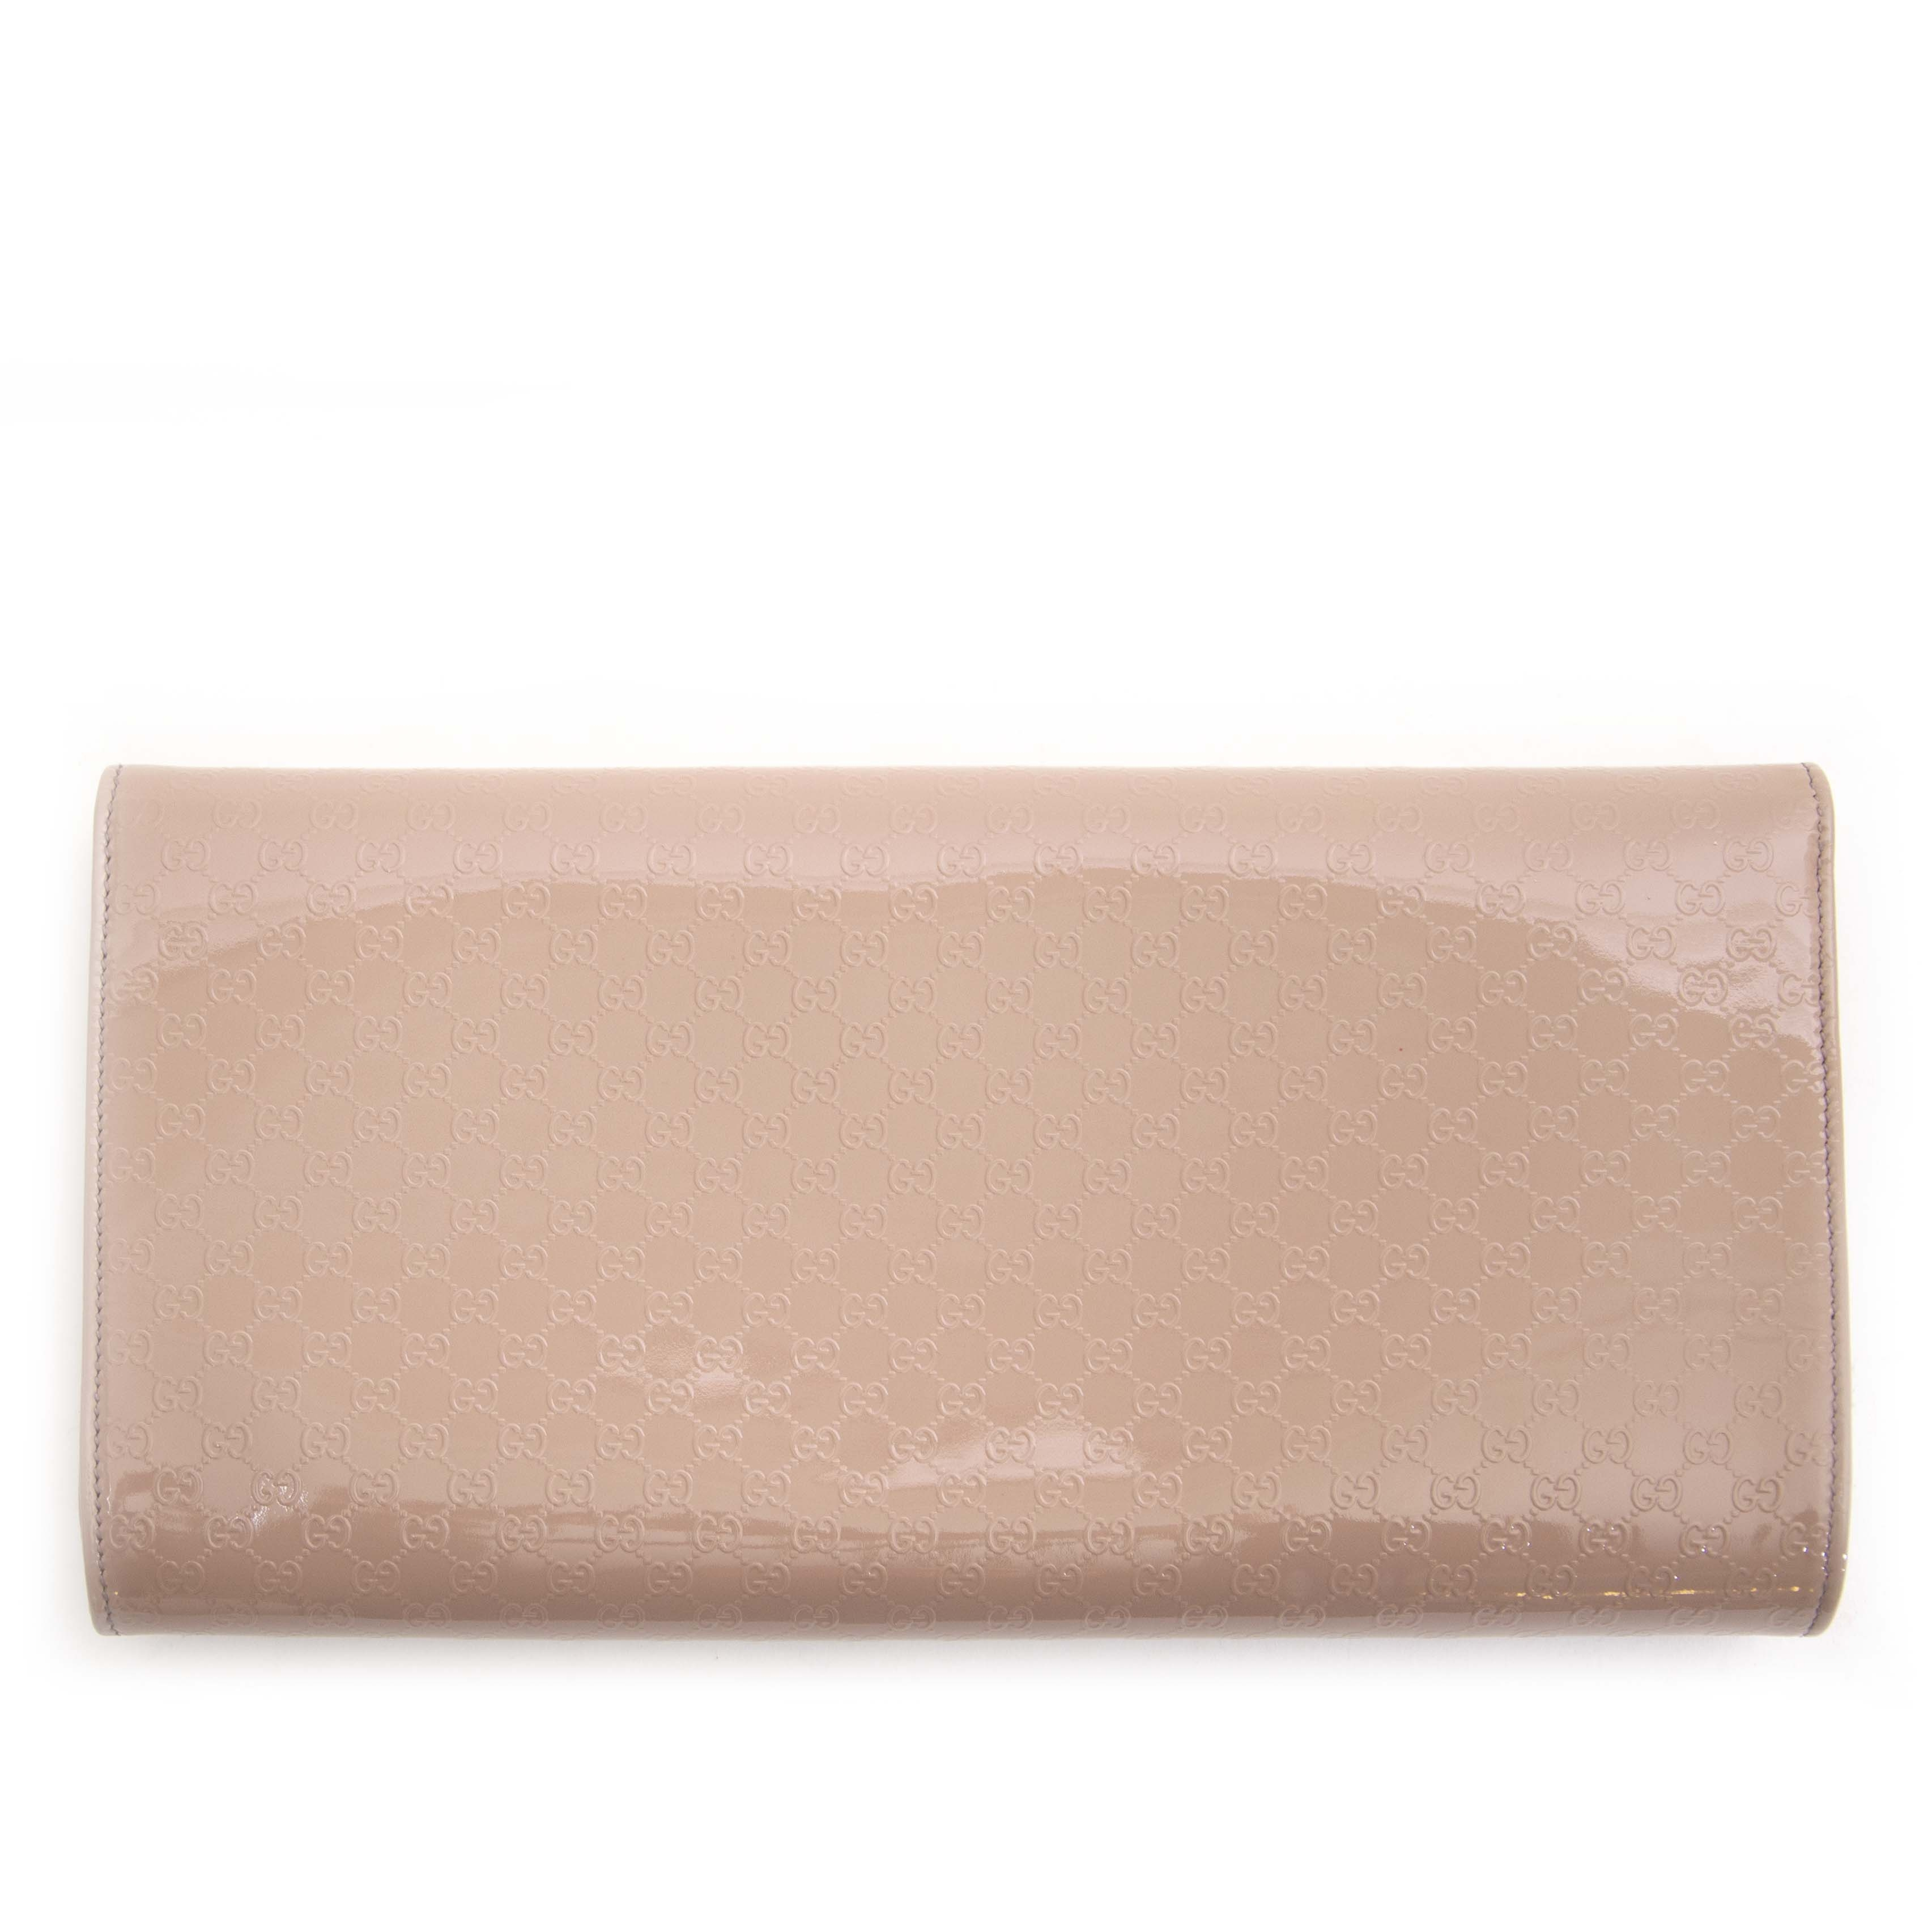 Gucci Nude Micro Guccissima Patent Broadway Clutch Buy secondhand Gucci bags at Labellov. Safe online shopping at a fair price. Koop tweedehands Gucci handtassen bij Labellov. Veilig online winkelen voor een eerlijke prijs.